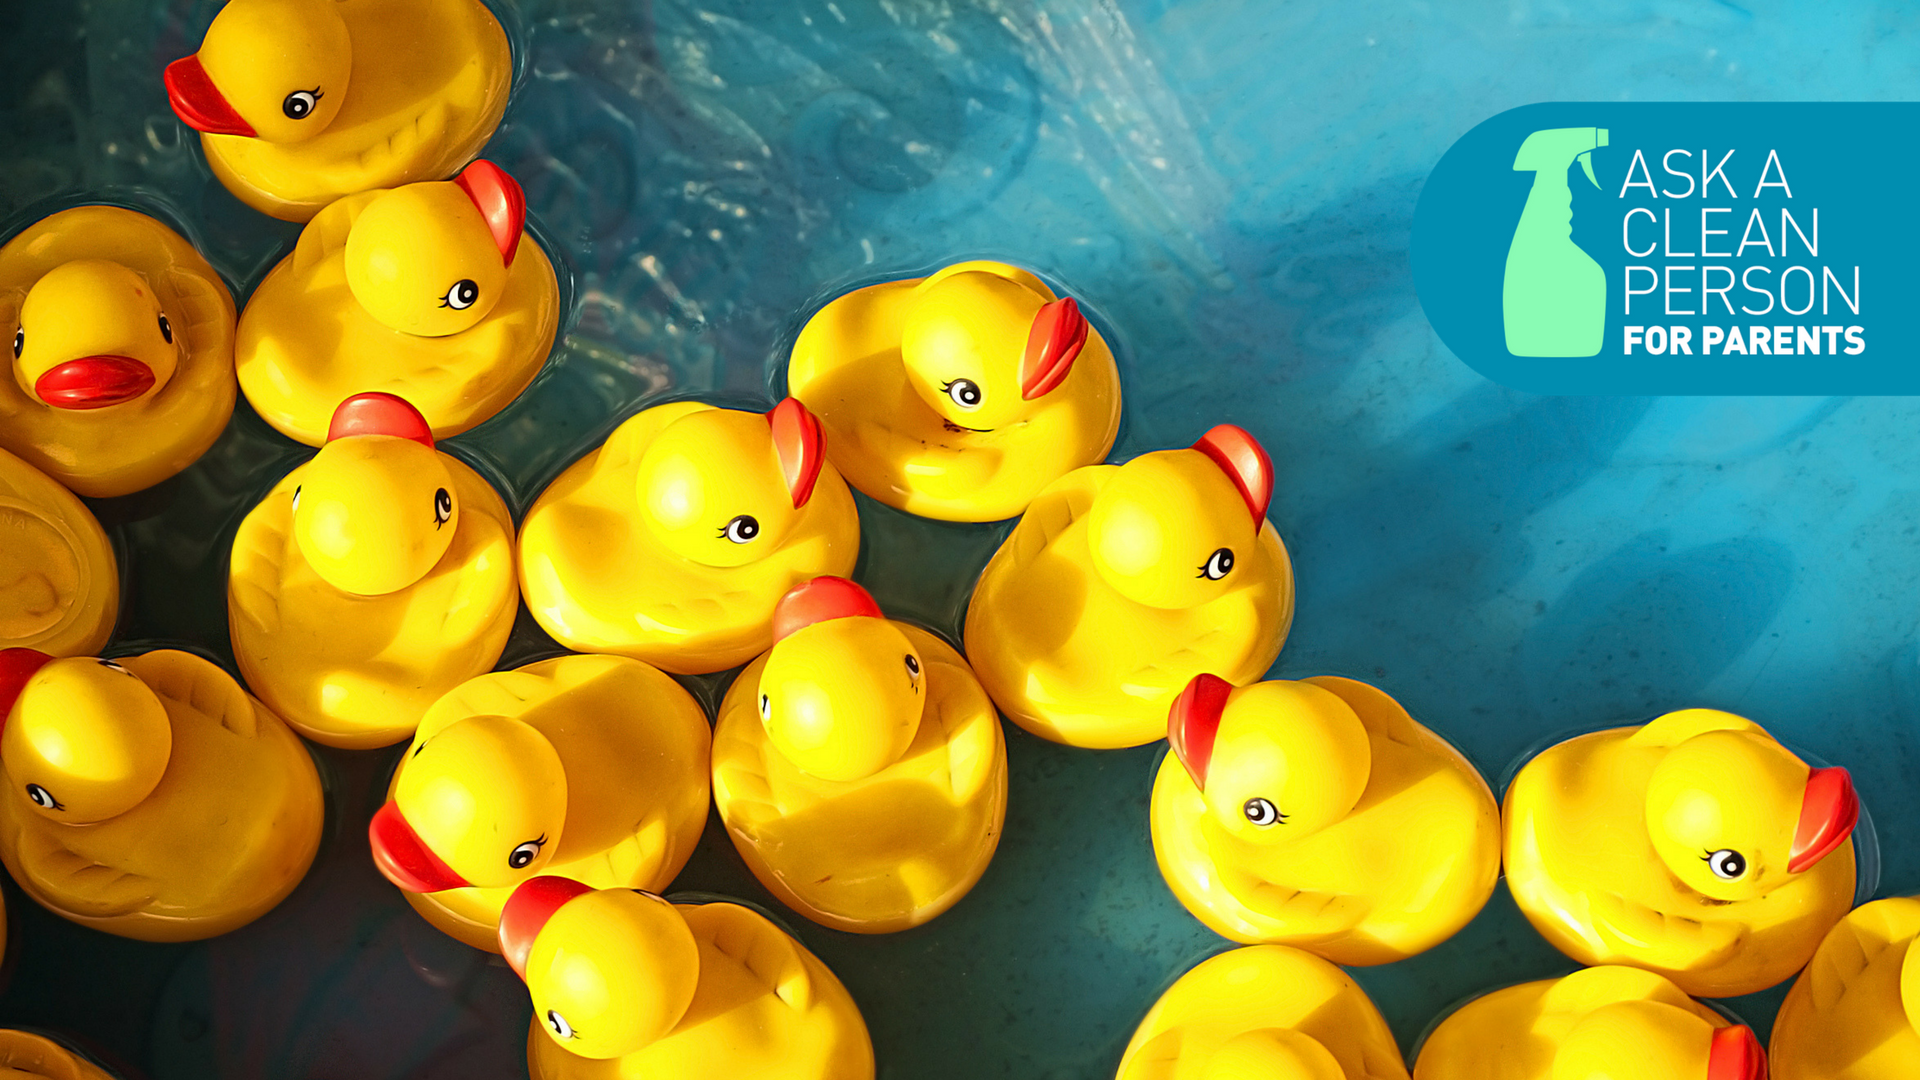 How To Clean Rubber Duckies And Other Bath Toys | Lifehacker Australia